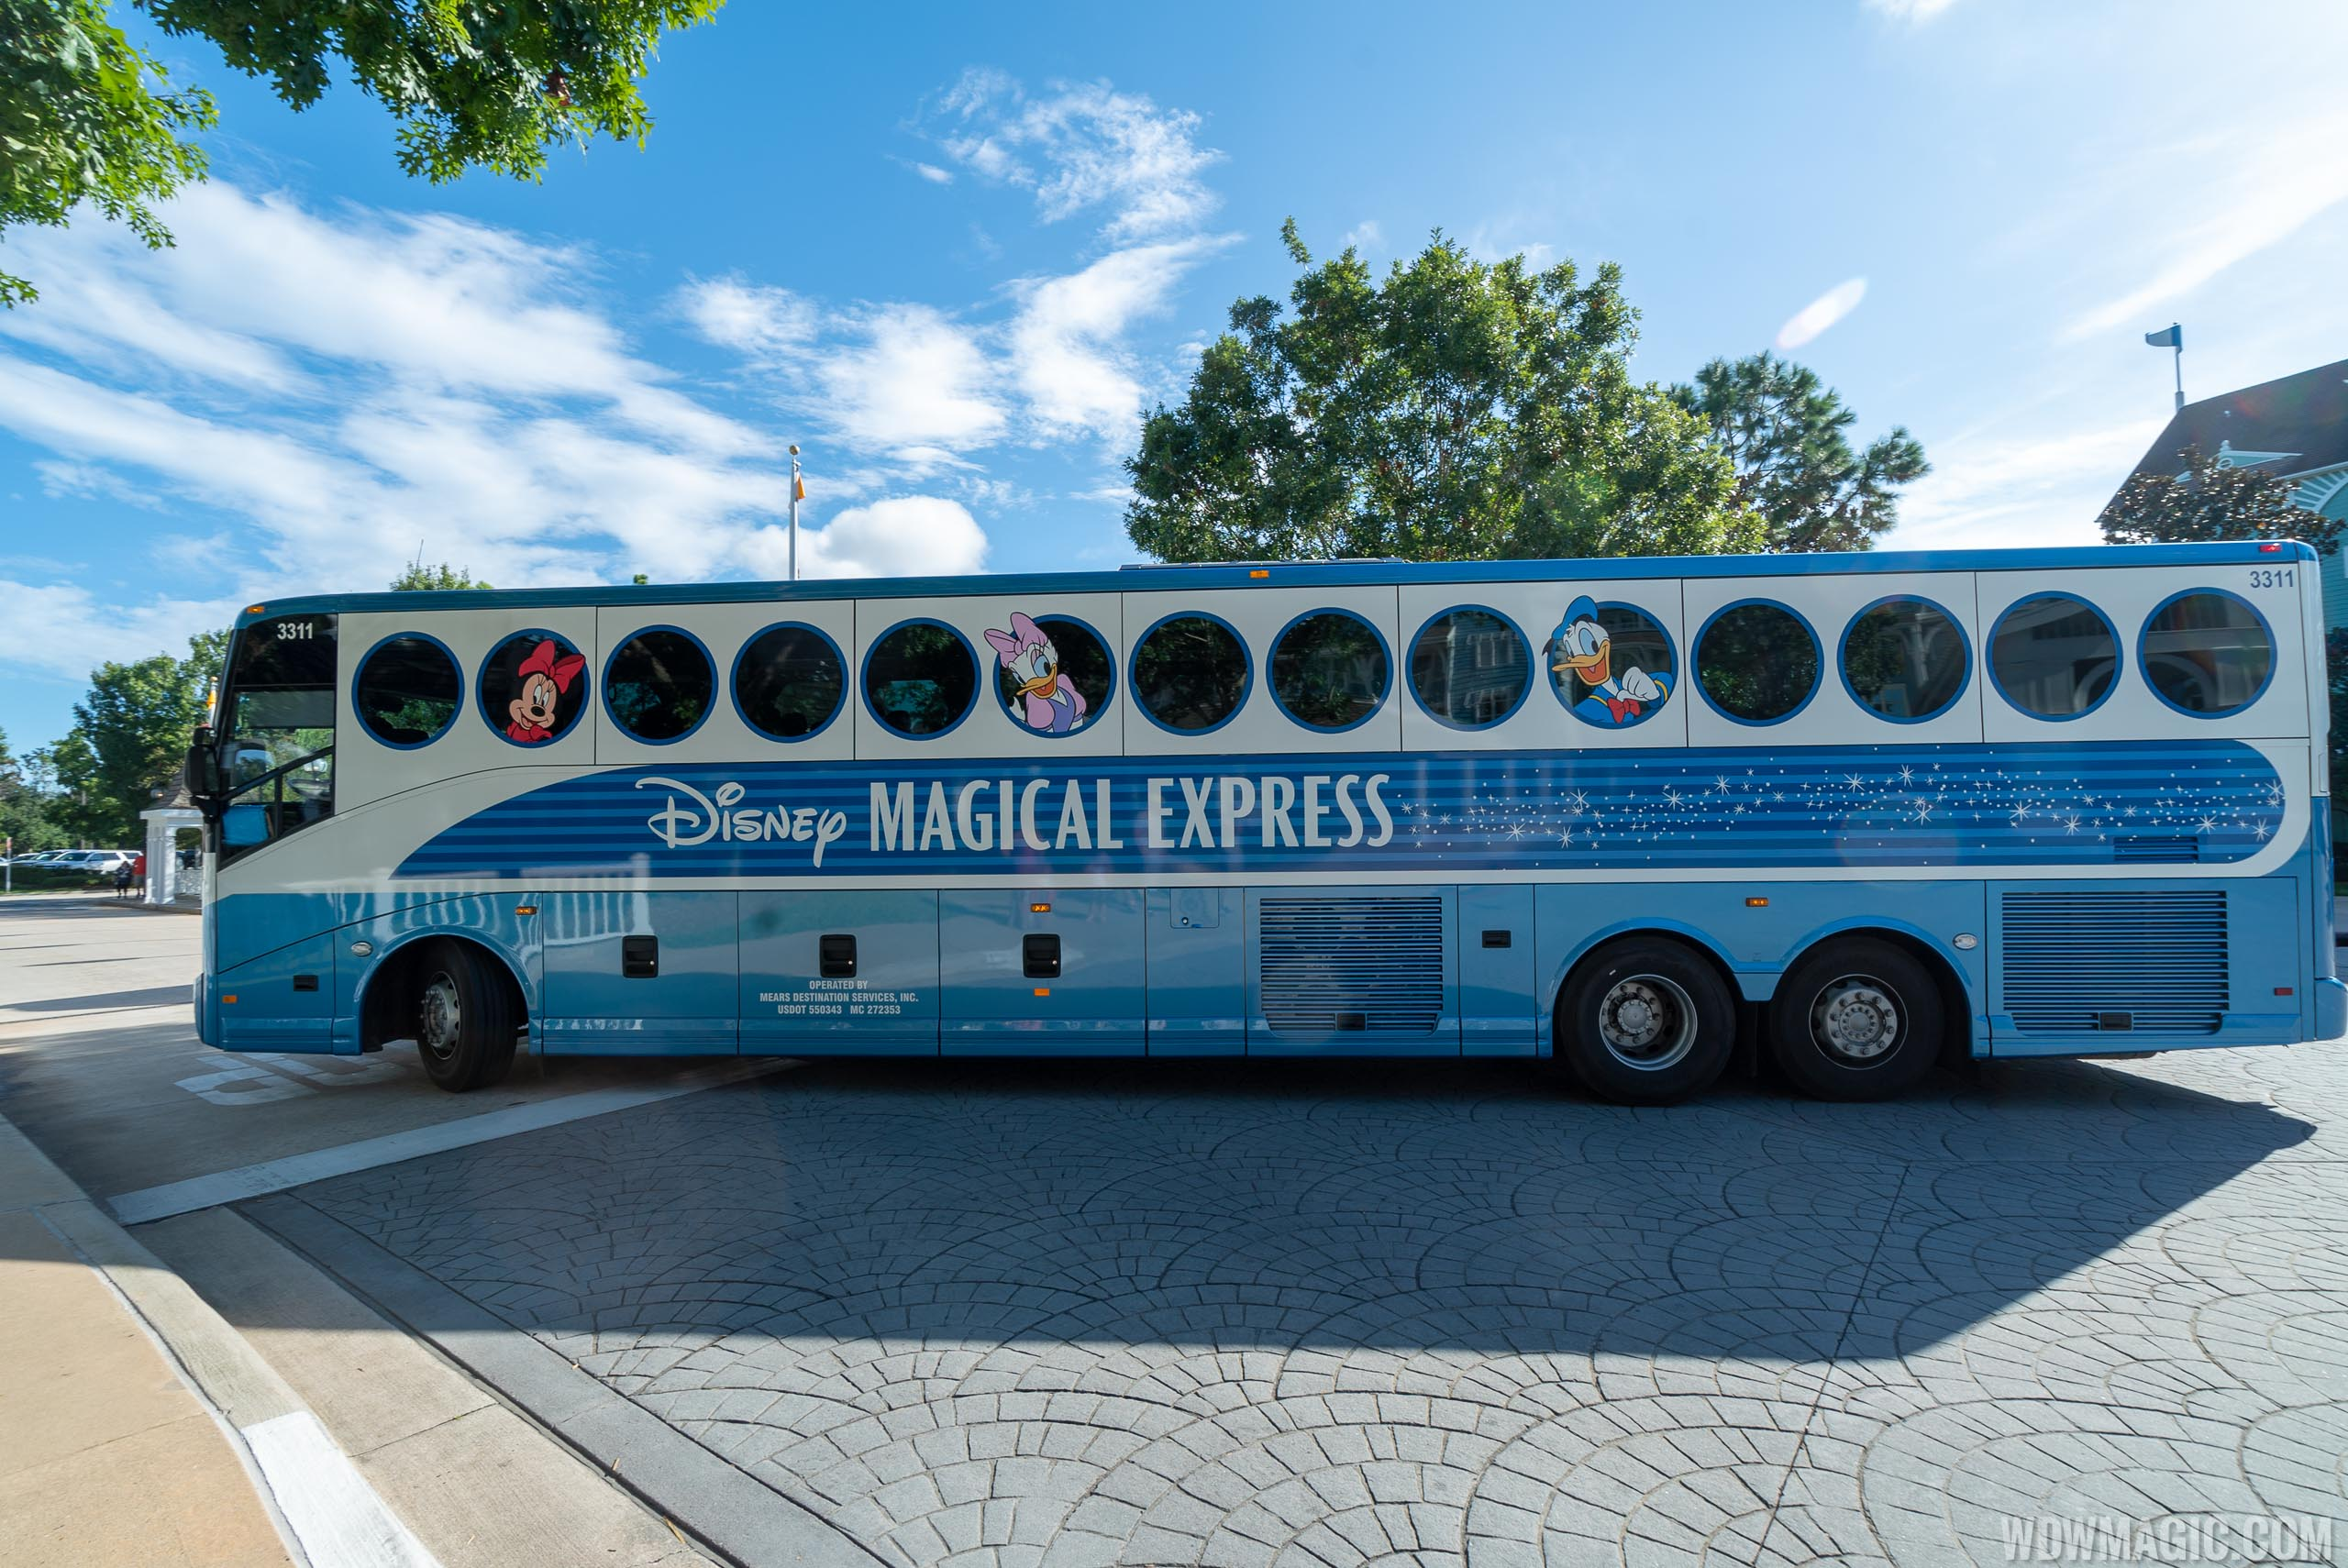 Magical Express is still available but with modifications